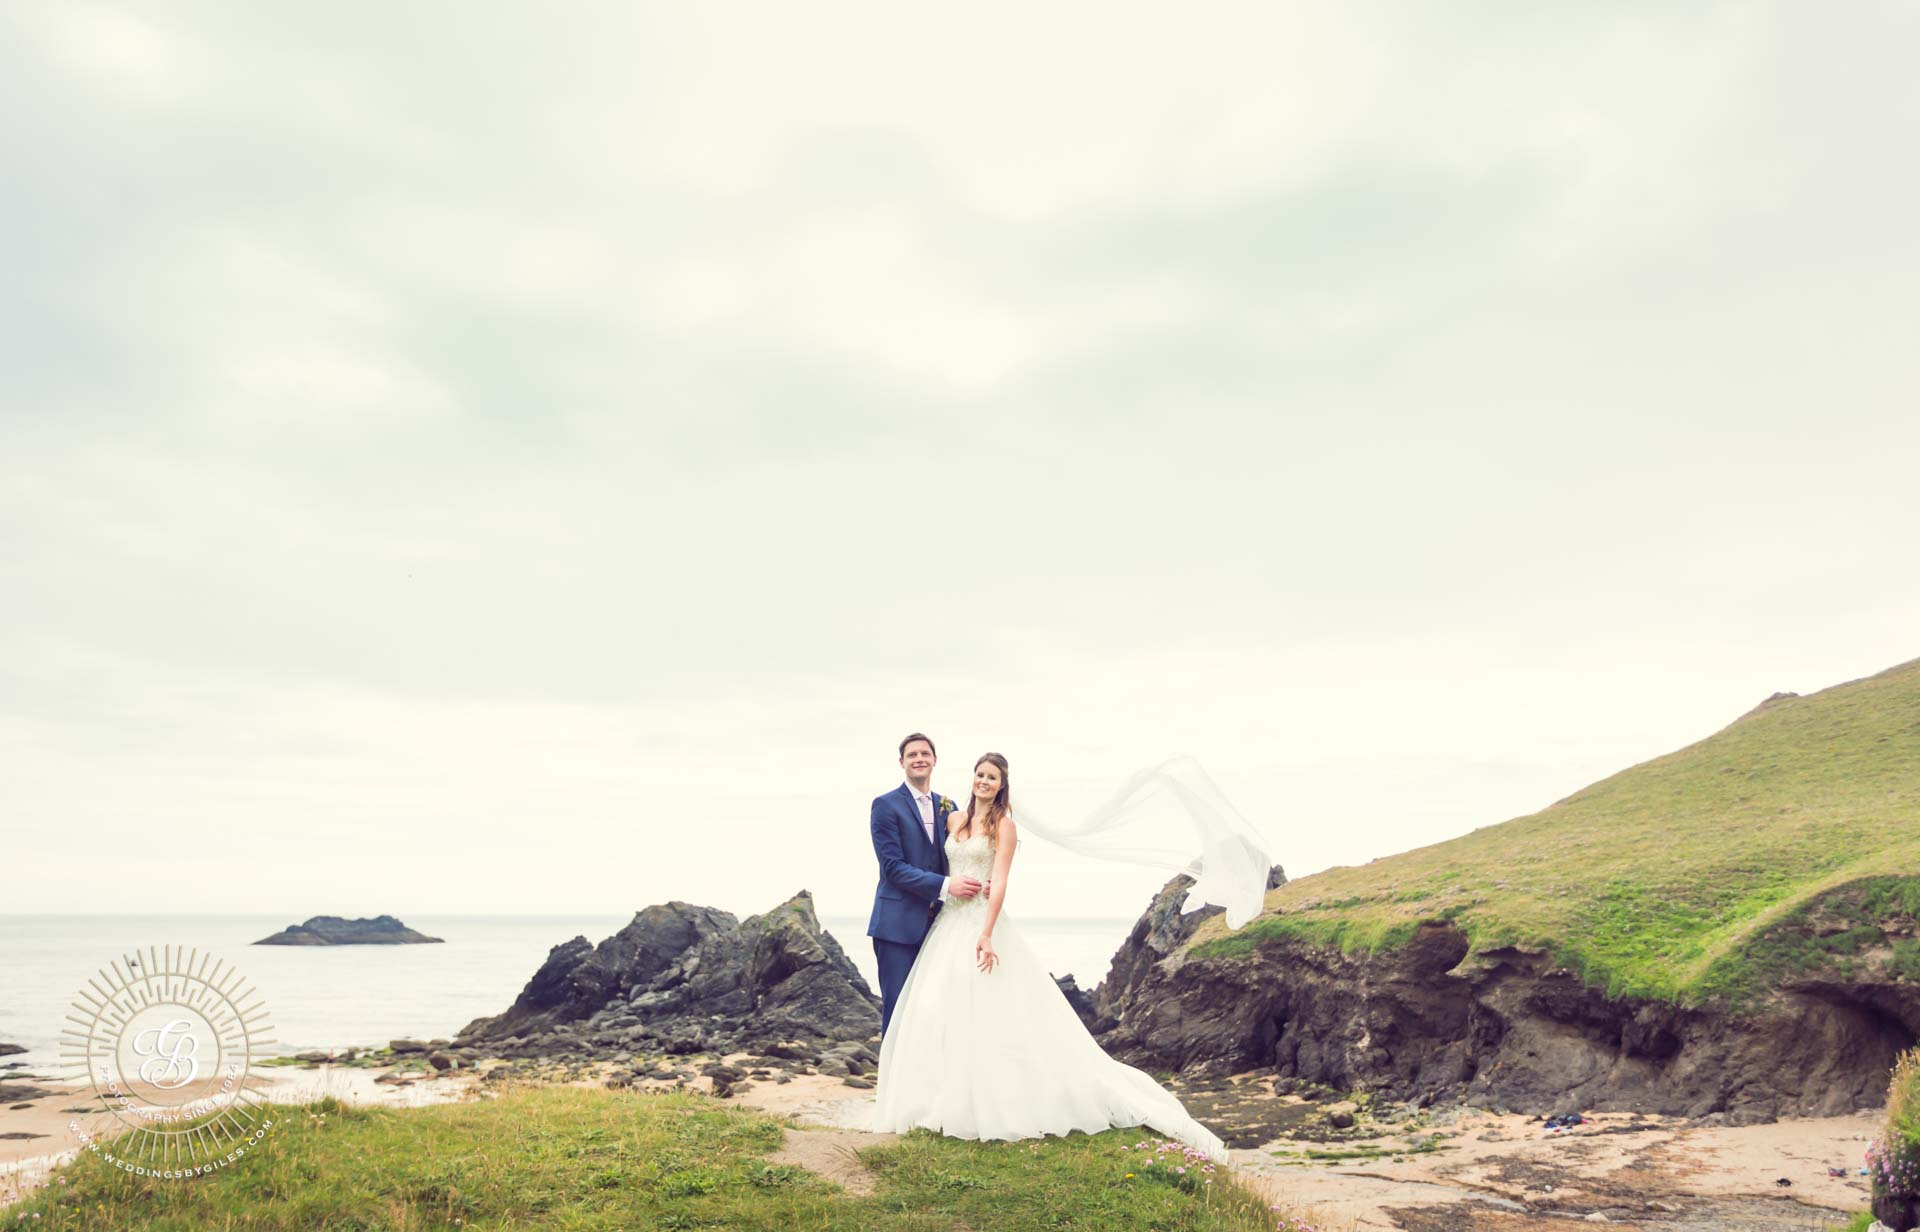 Soar Mill Cove wedding beach portrait